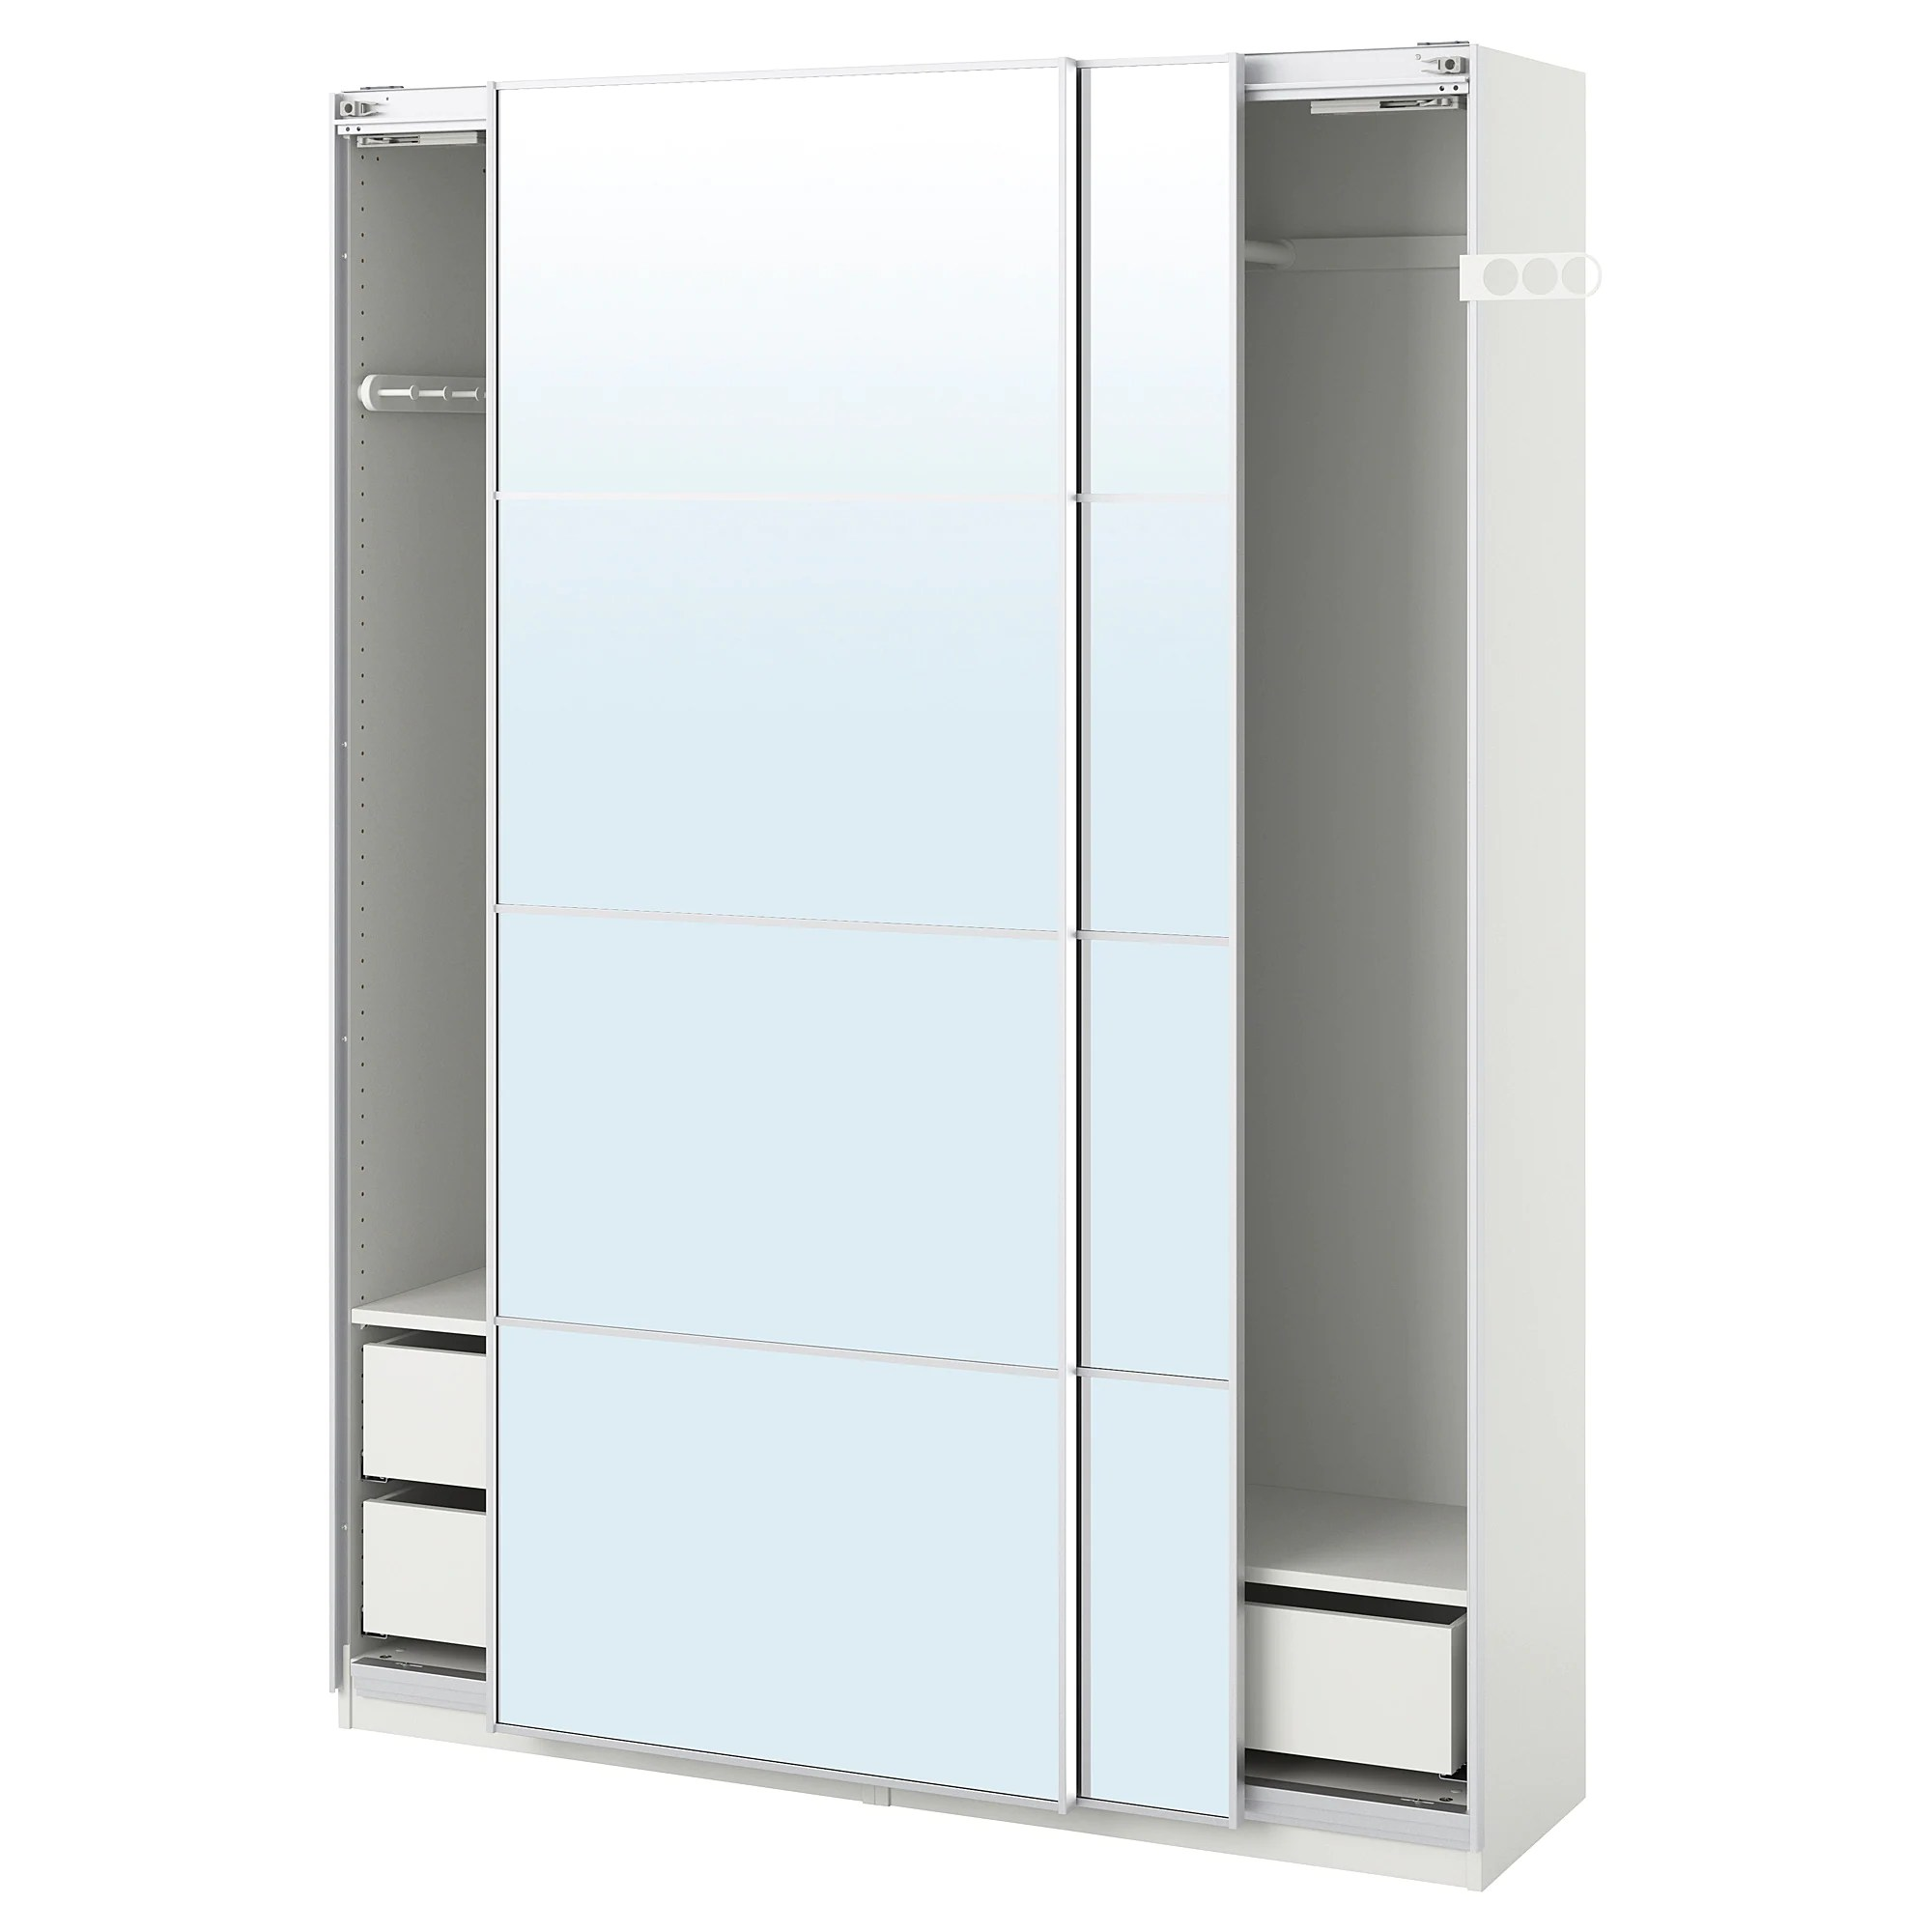 Ikea Wardrobe Tidy Wardrobe Pax White Auli Mirror Glass